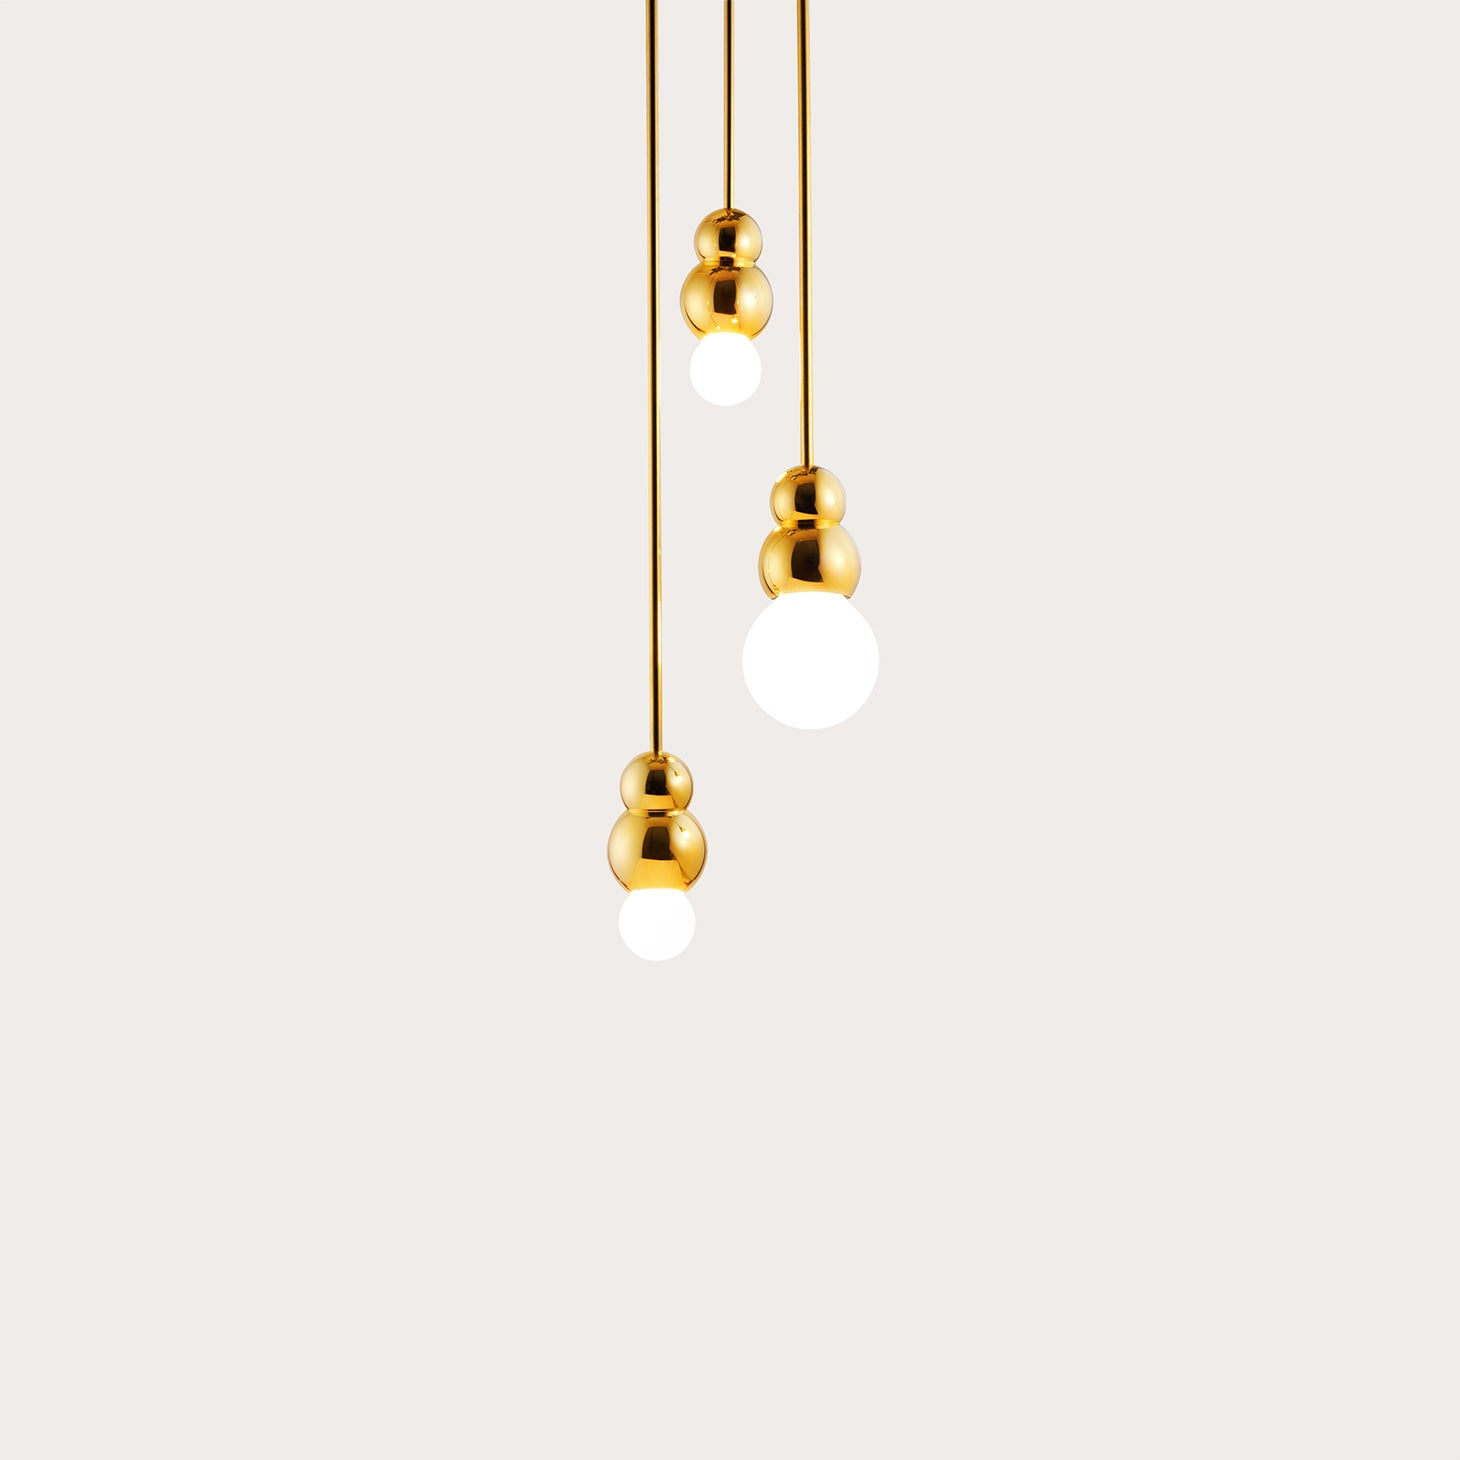 Ball Light 3 Ceiling Rose Lighting Michael Anastassiades Designer Furniture Sku: 717-100-10063